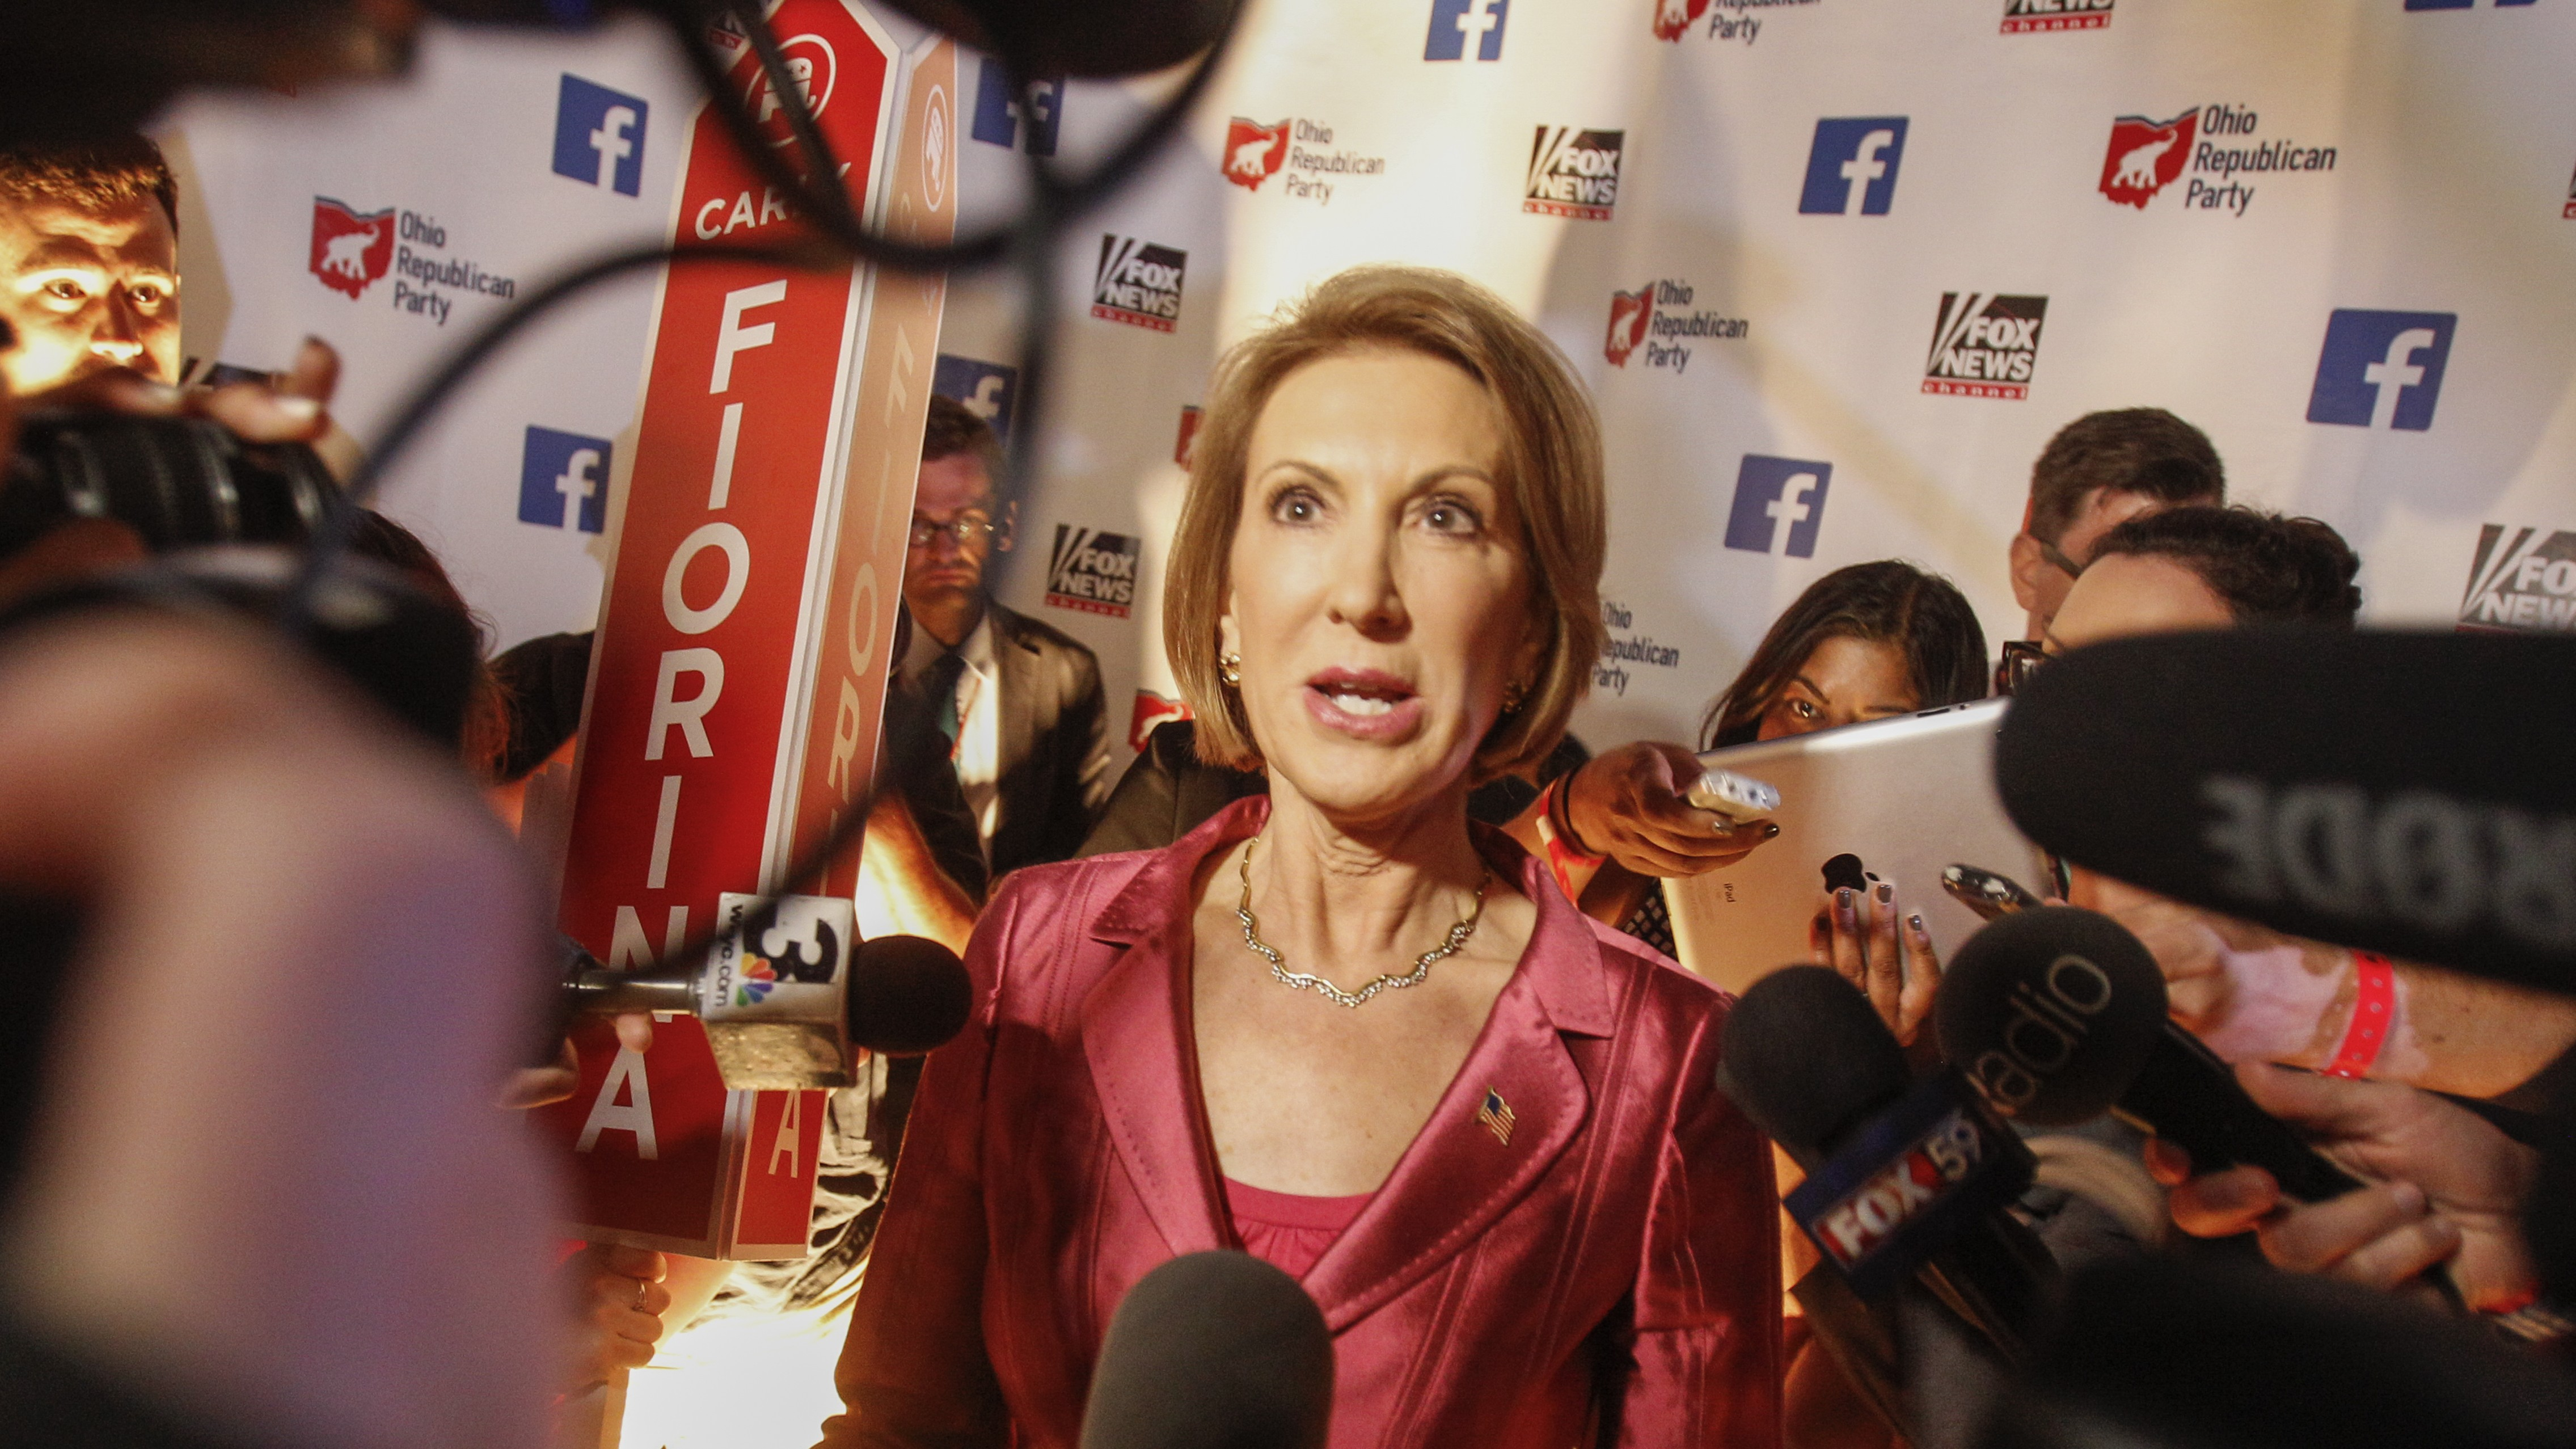 How Carly Fiorina's Candidacy Is Helping the Republican Party — Even If She Doesn't Win